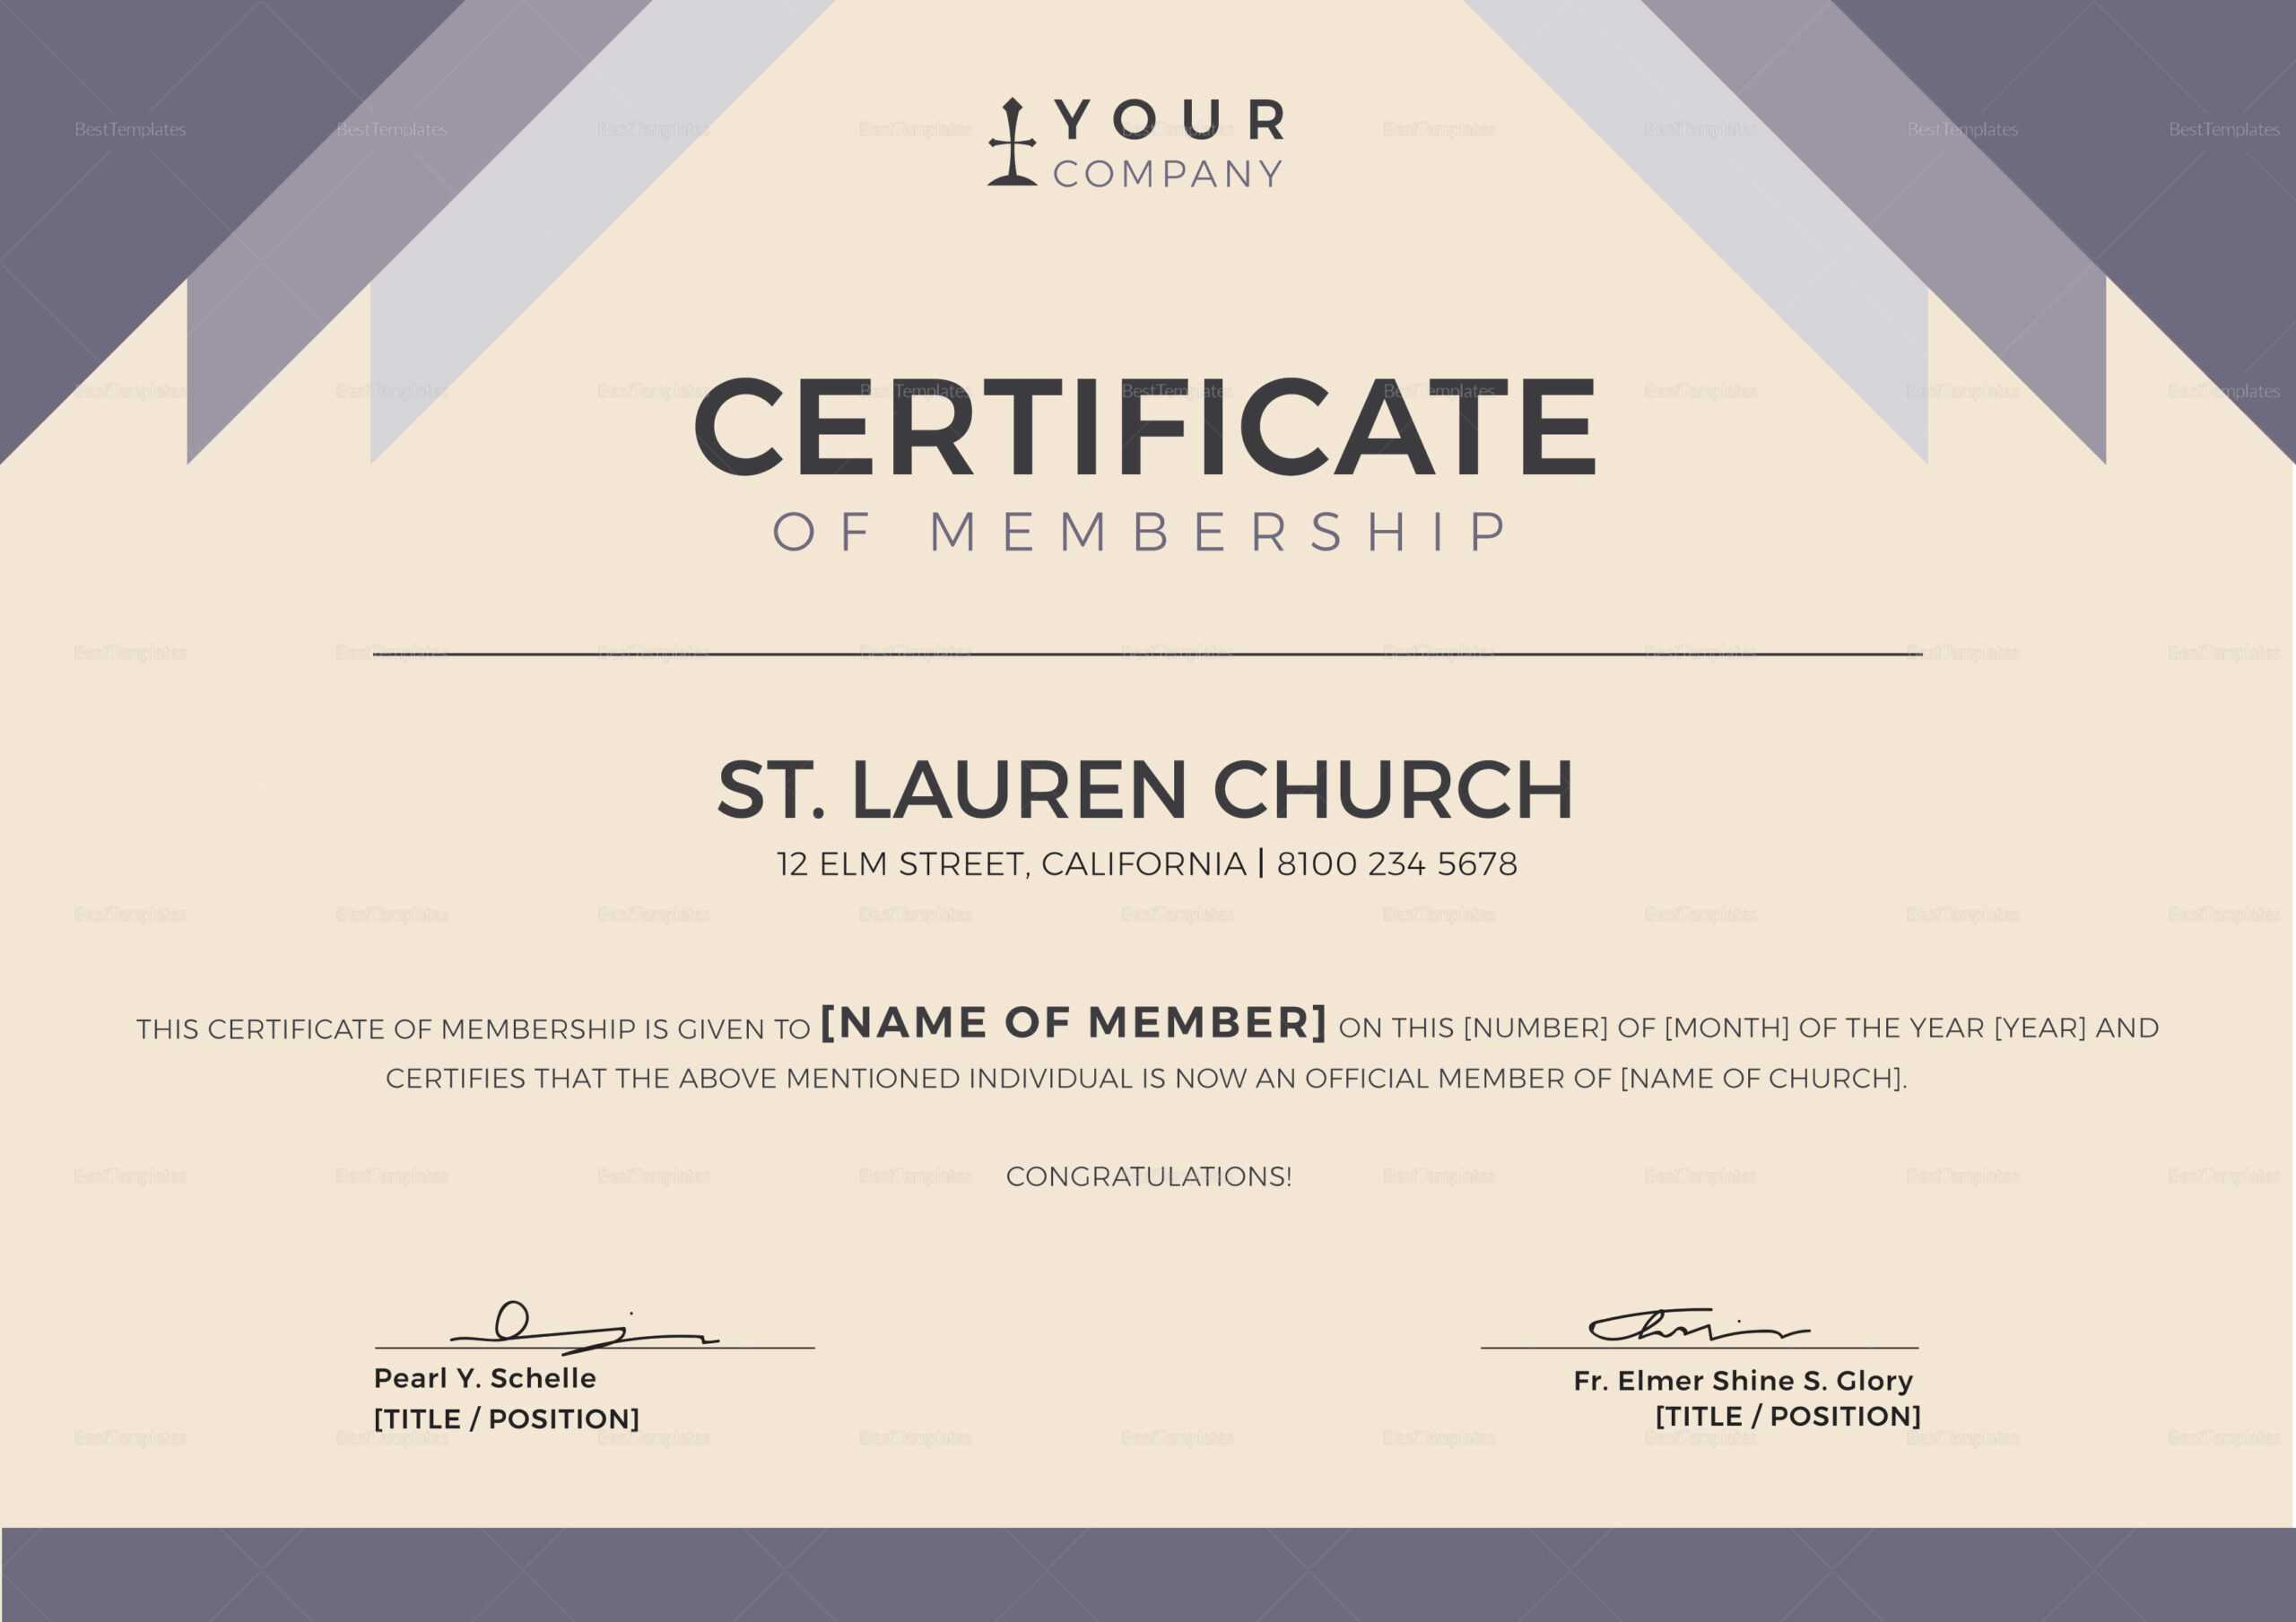 Church Membership Certificate Template With New Member Certificate Template